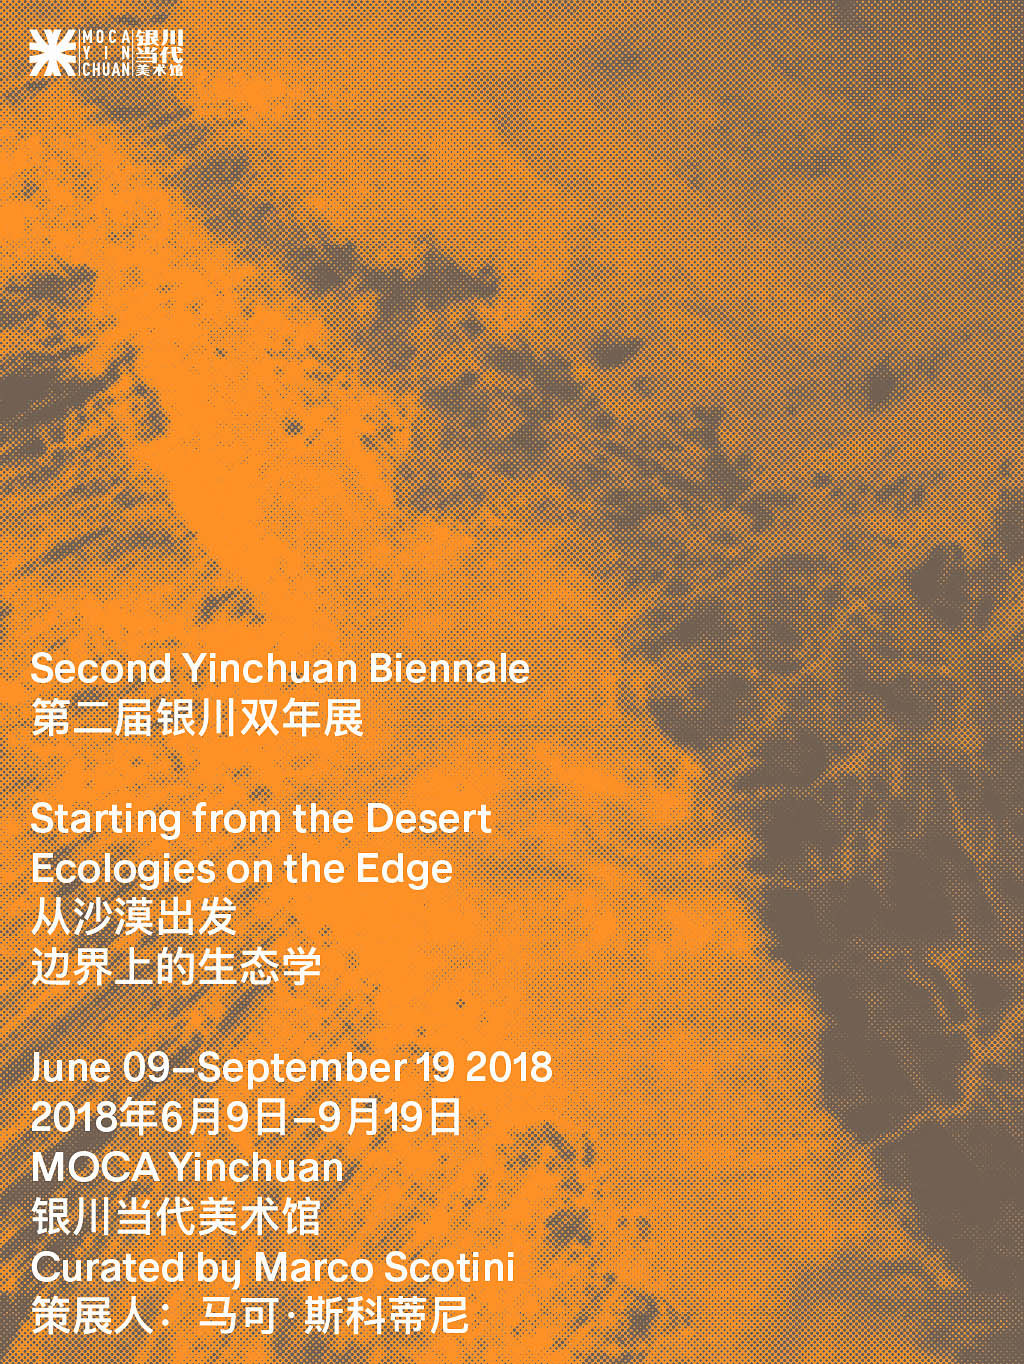 MOUSSE AGENCY THE SECOND YINCHUAN BIENNALE